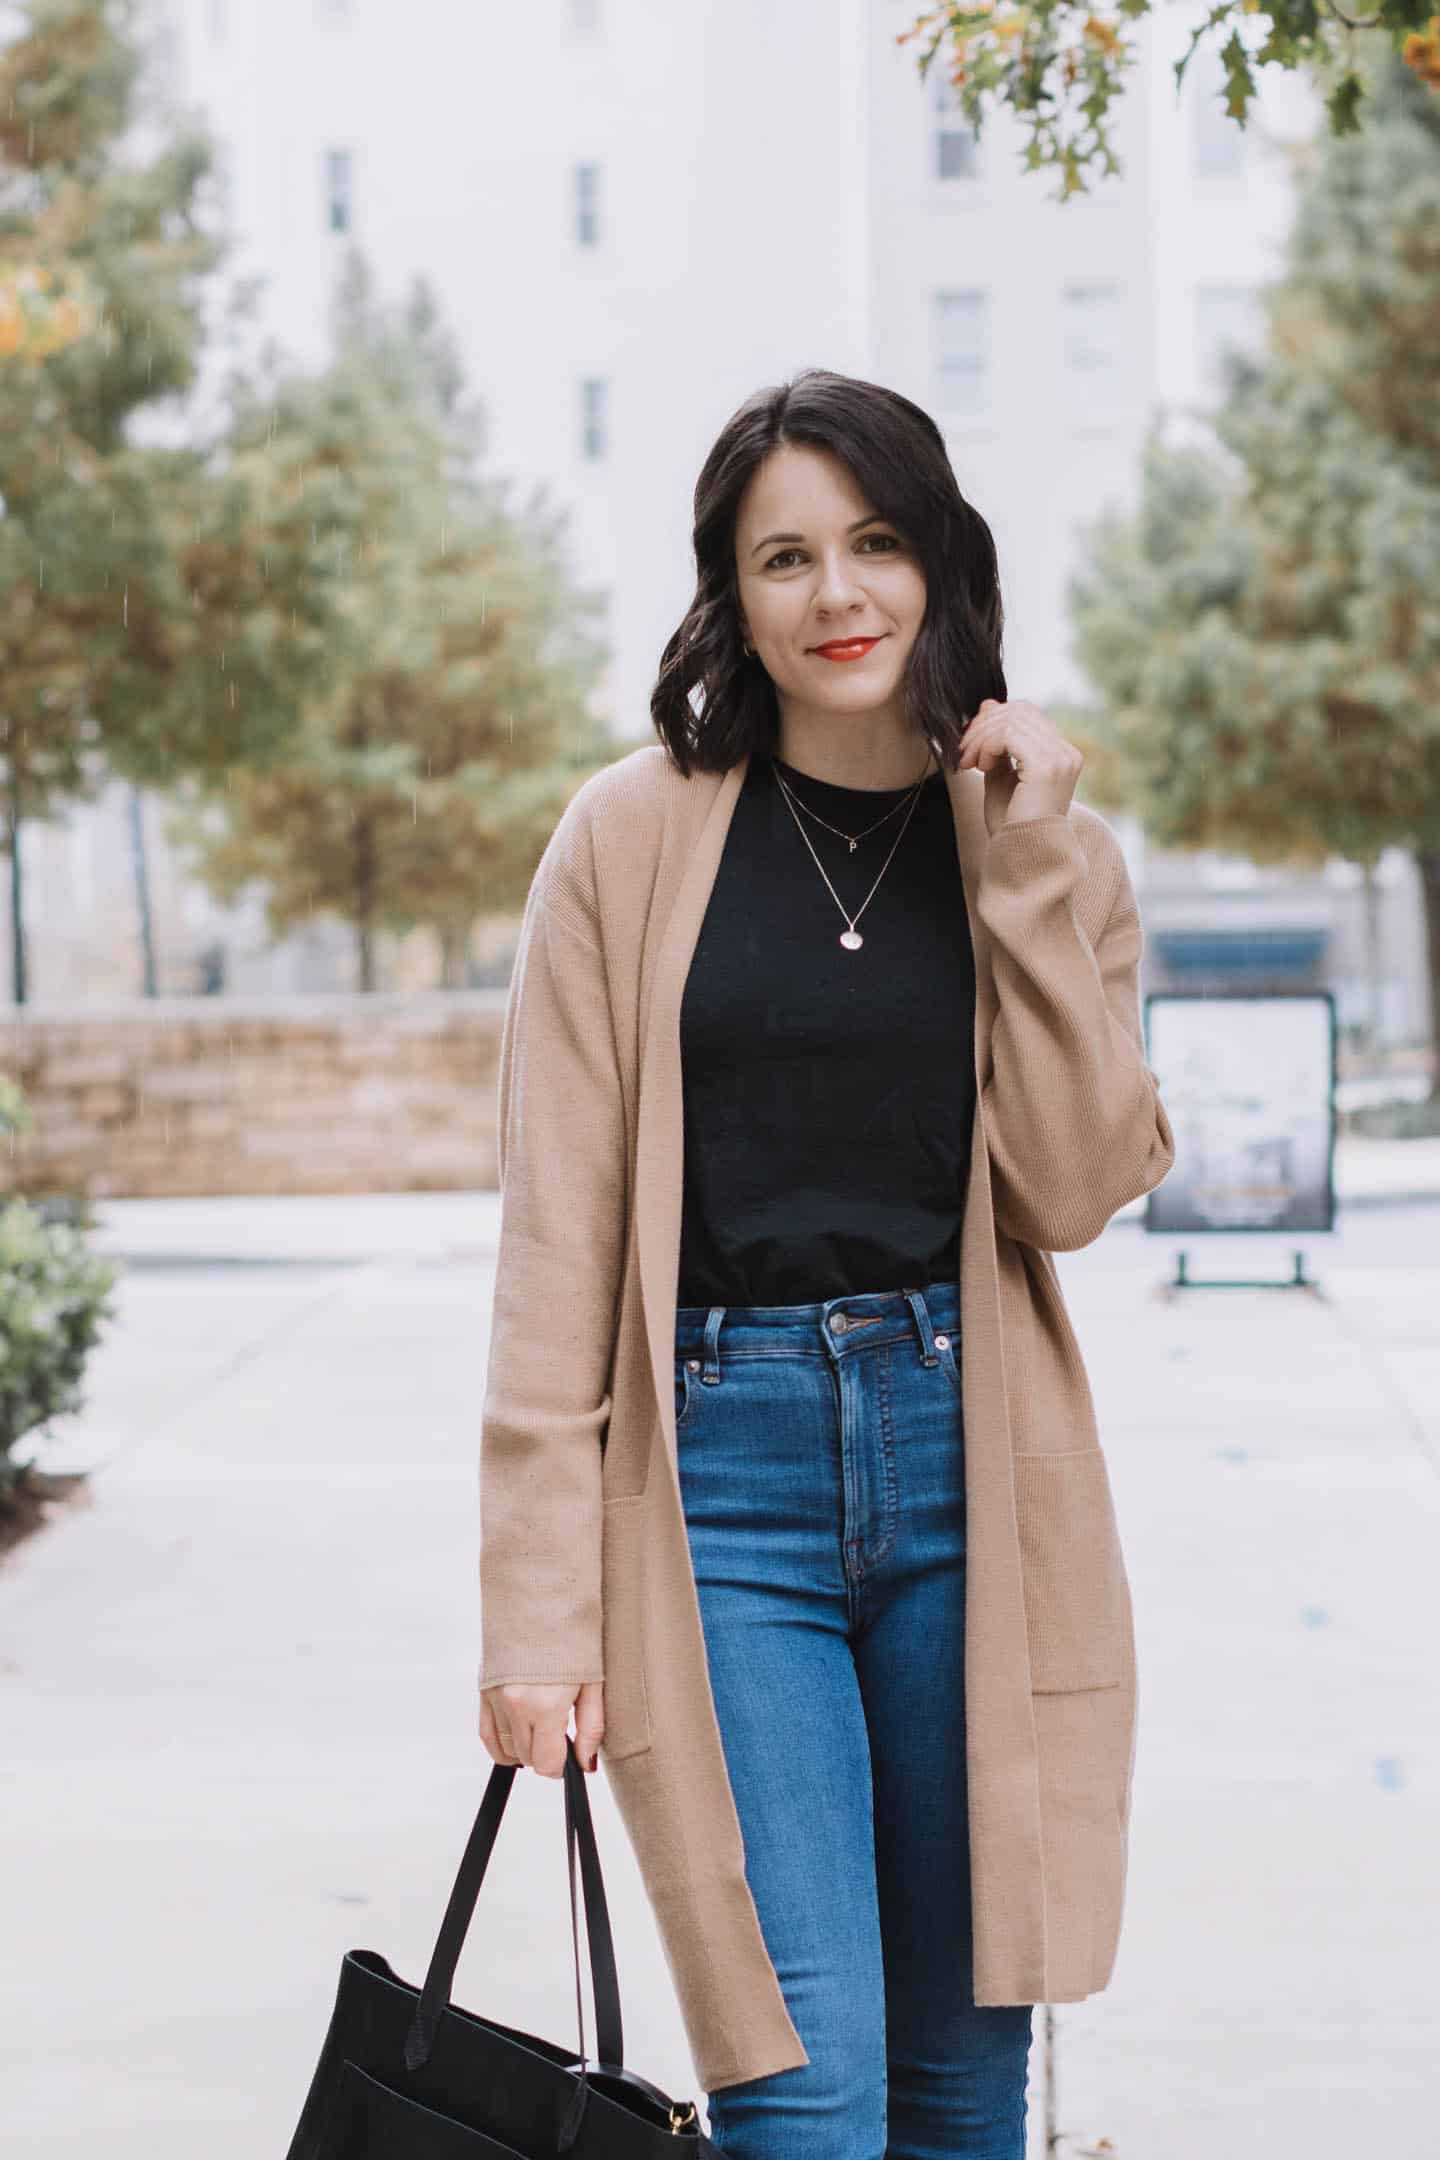 Camel cardigan from Express with black tee and jeans